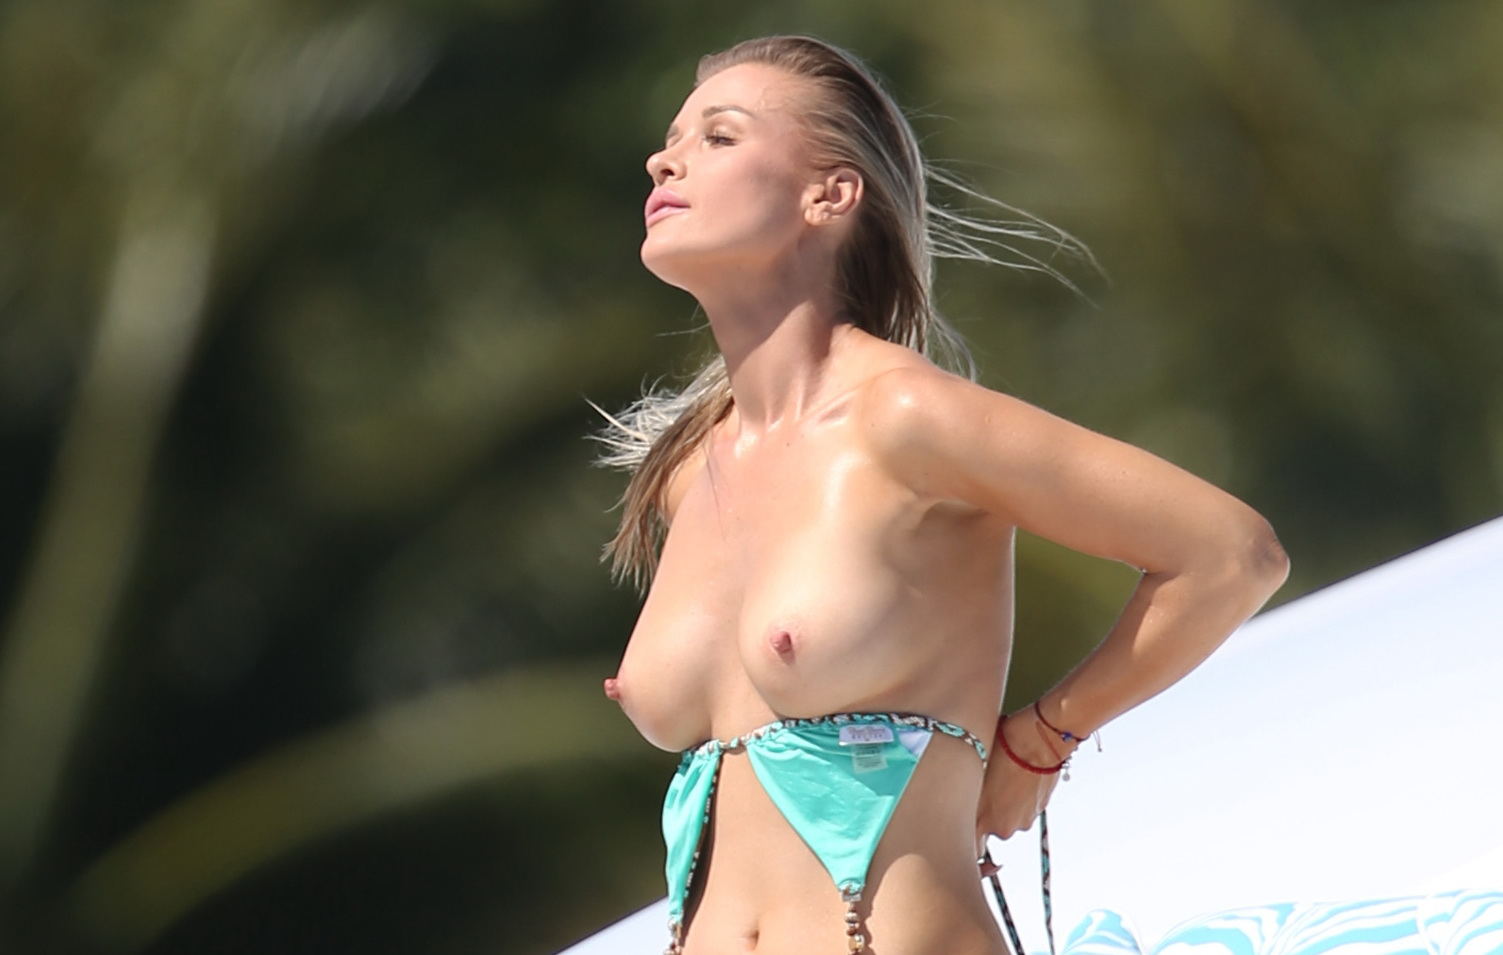 Joanna krupa boobs nude